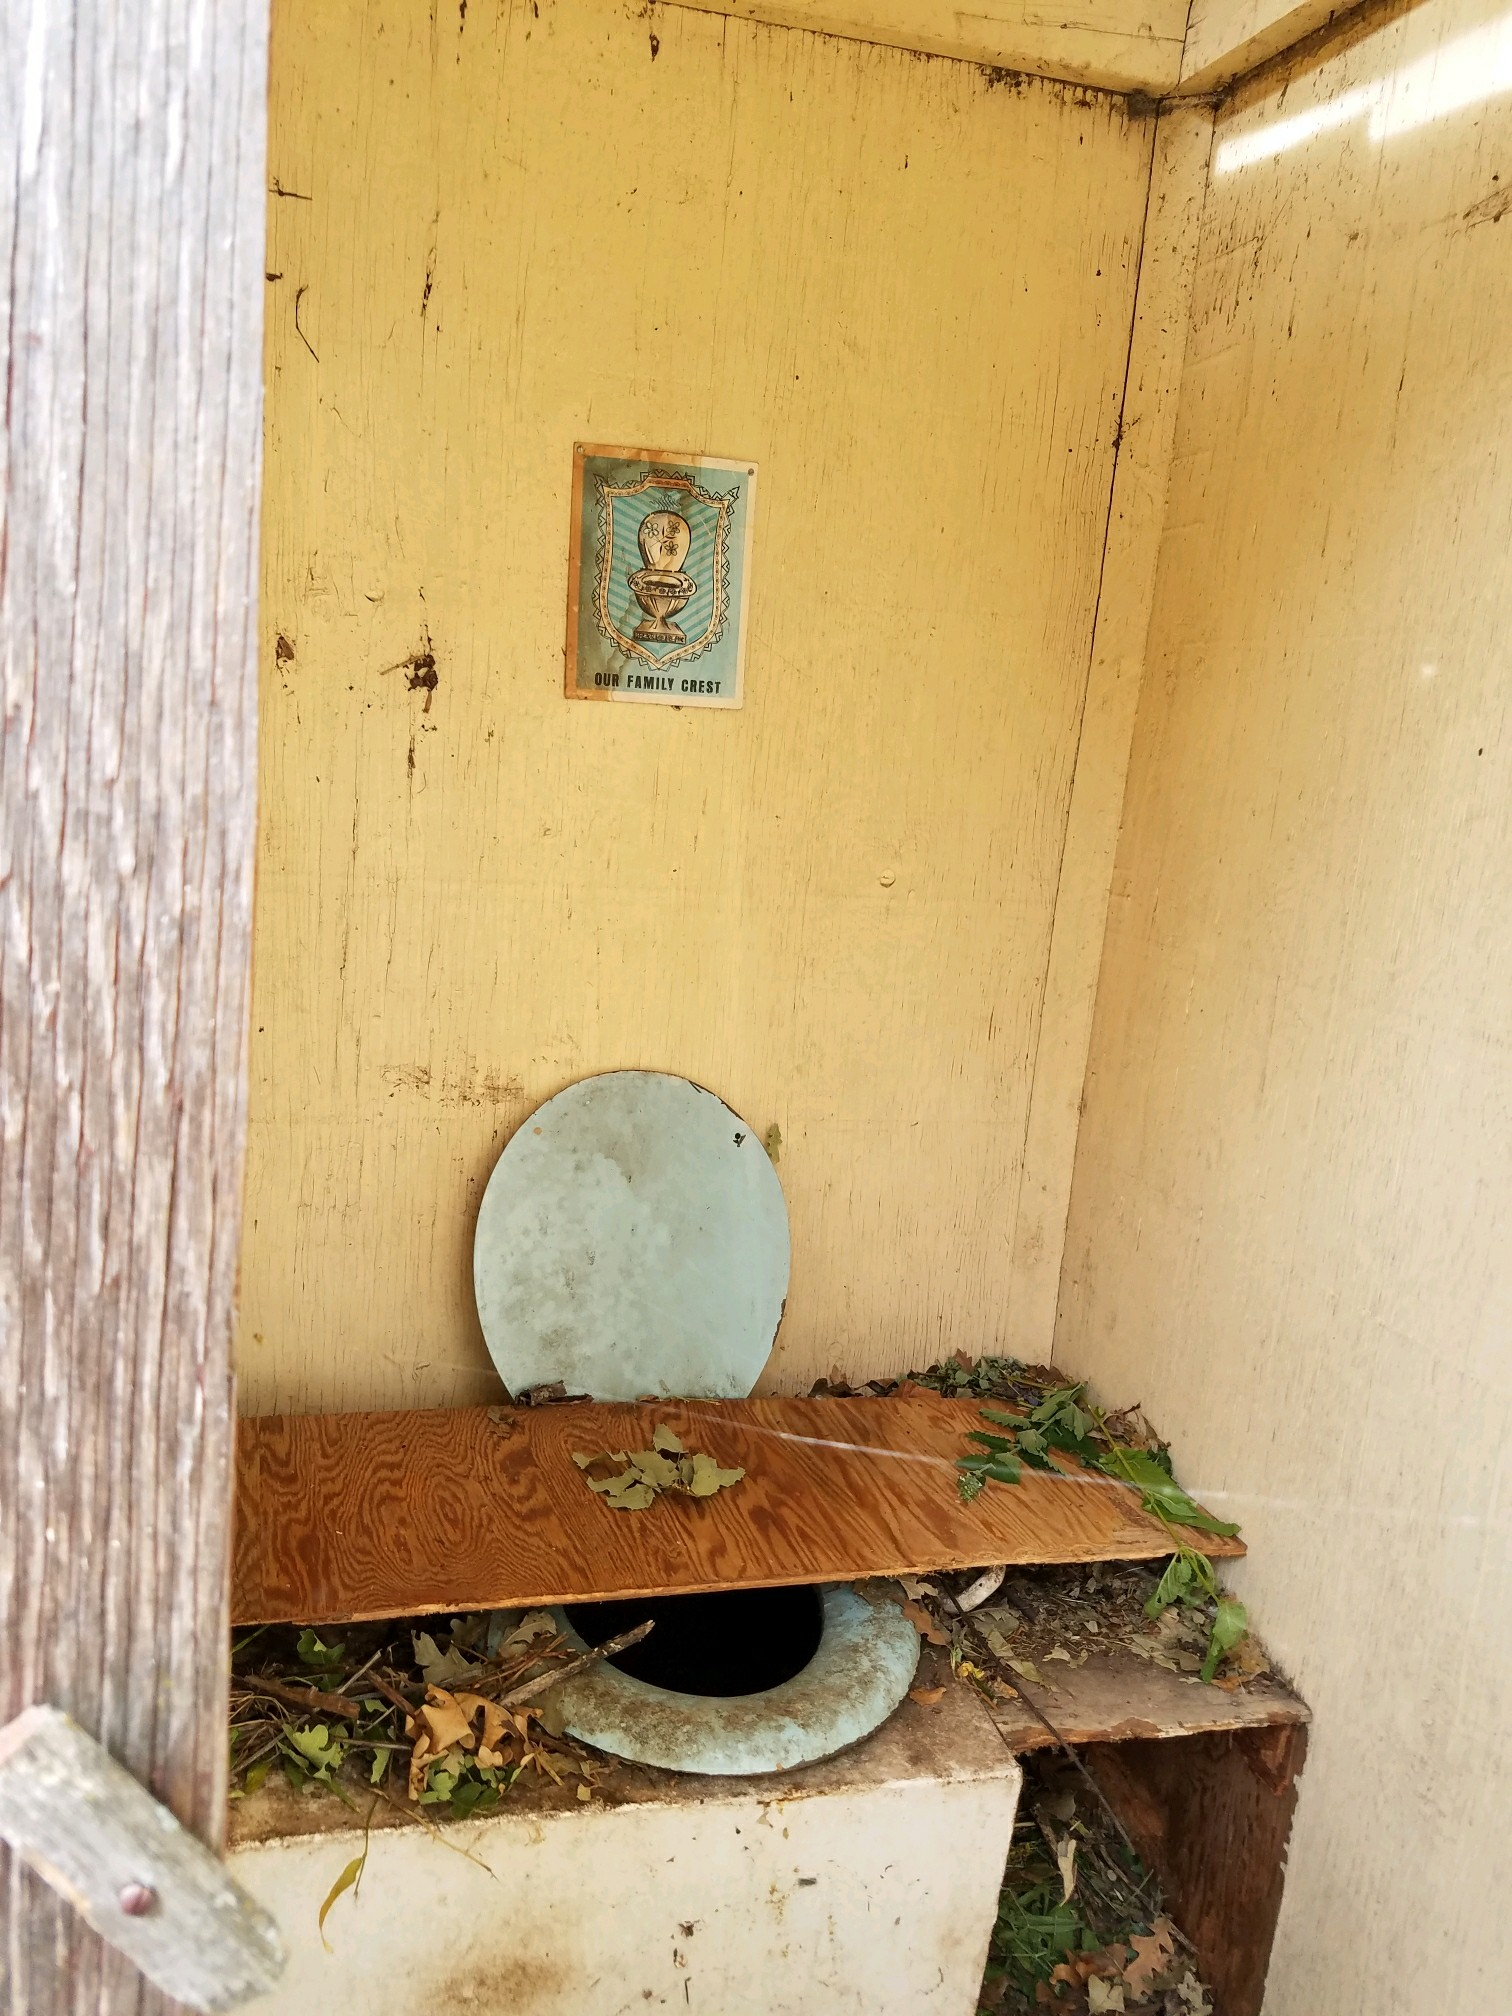 Here's the inside of the outhouse...not exactly clean and welcoming...